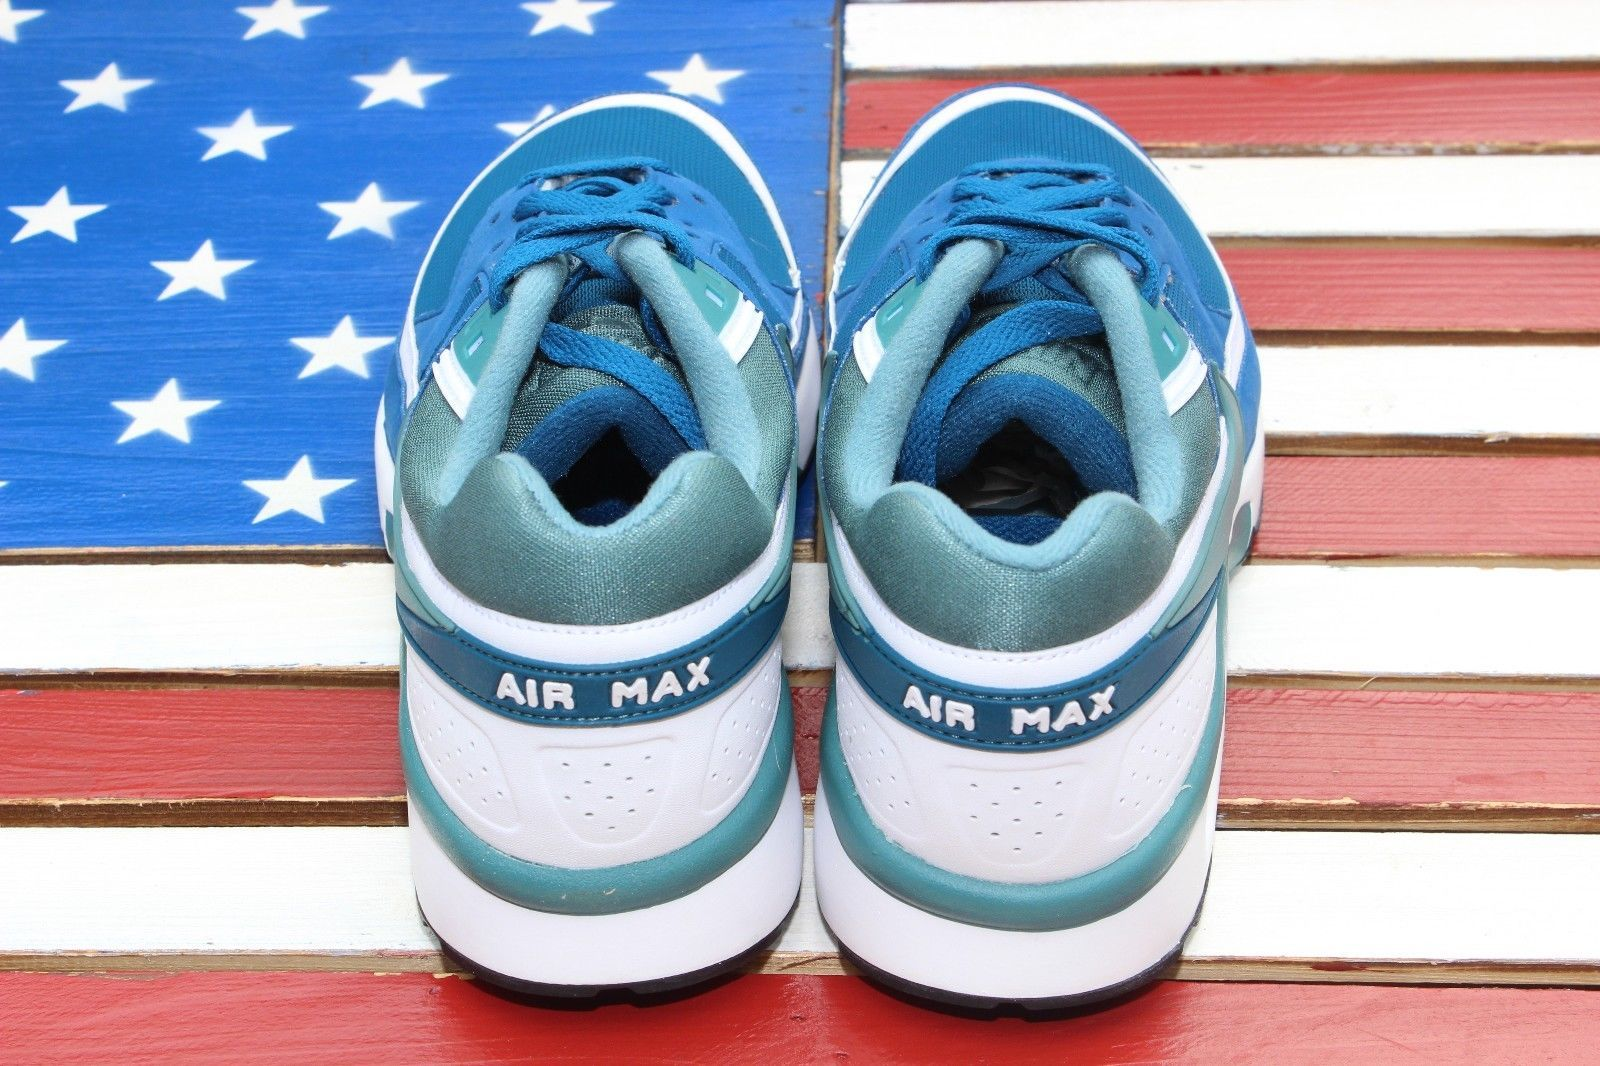 8473e2afc2 ... hot nike air max bw og running shoes marina blue jade green 819522  fe2a3 641a3